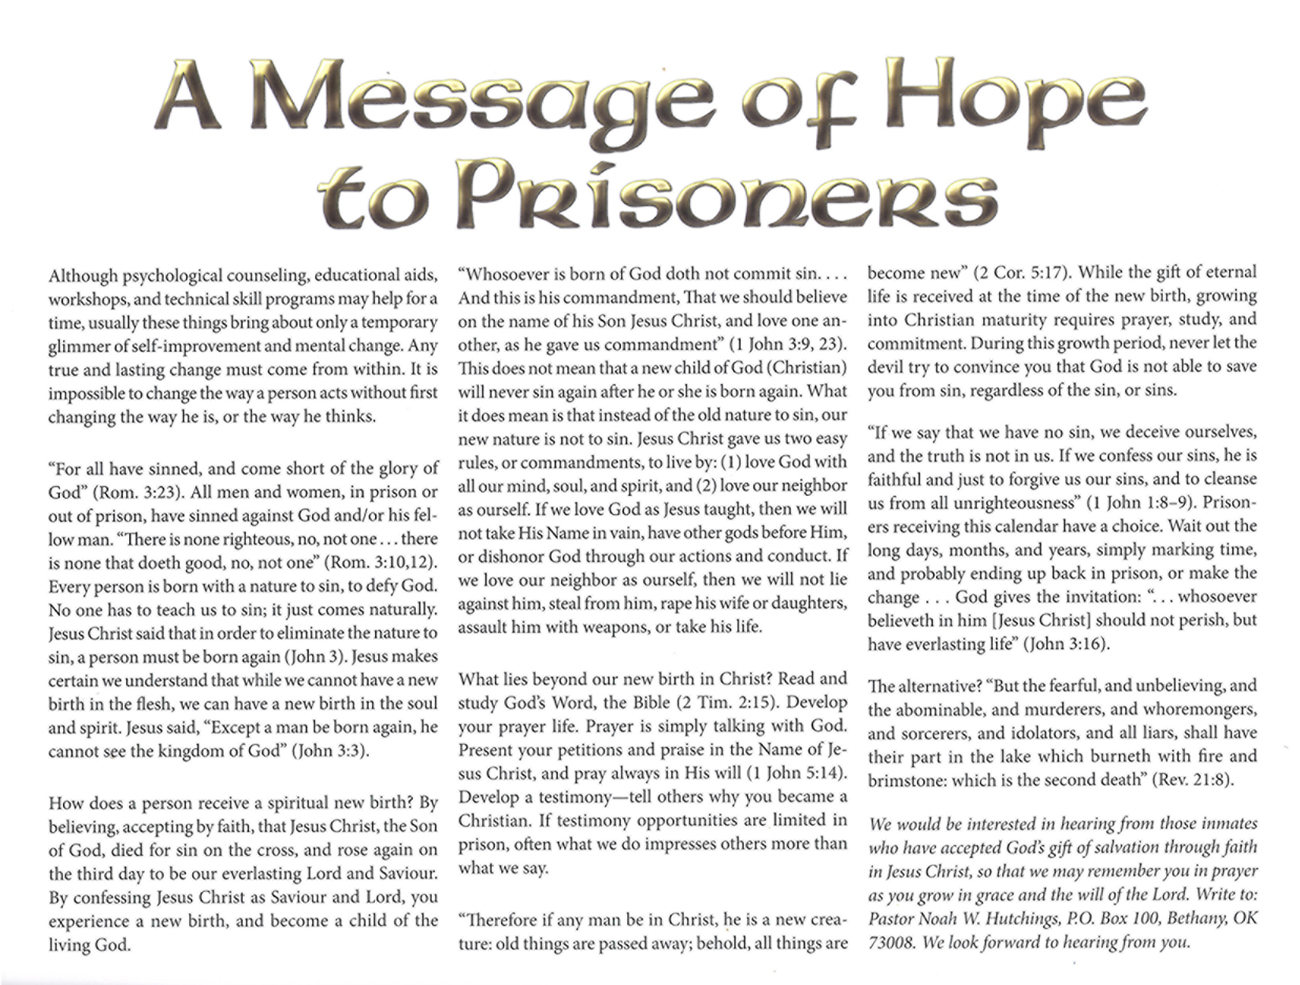 2013 Prophecy Calendar: A Message of Hope to Prisoners